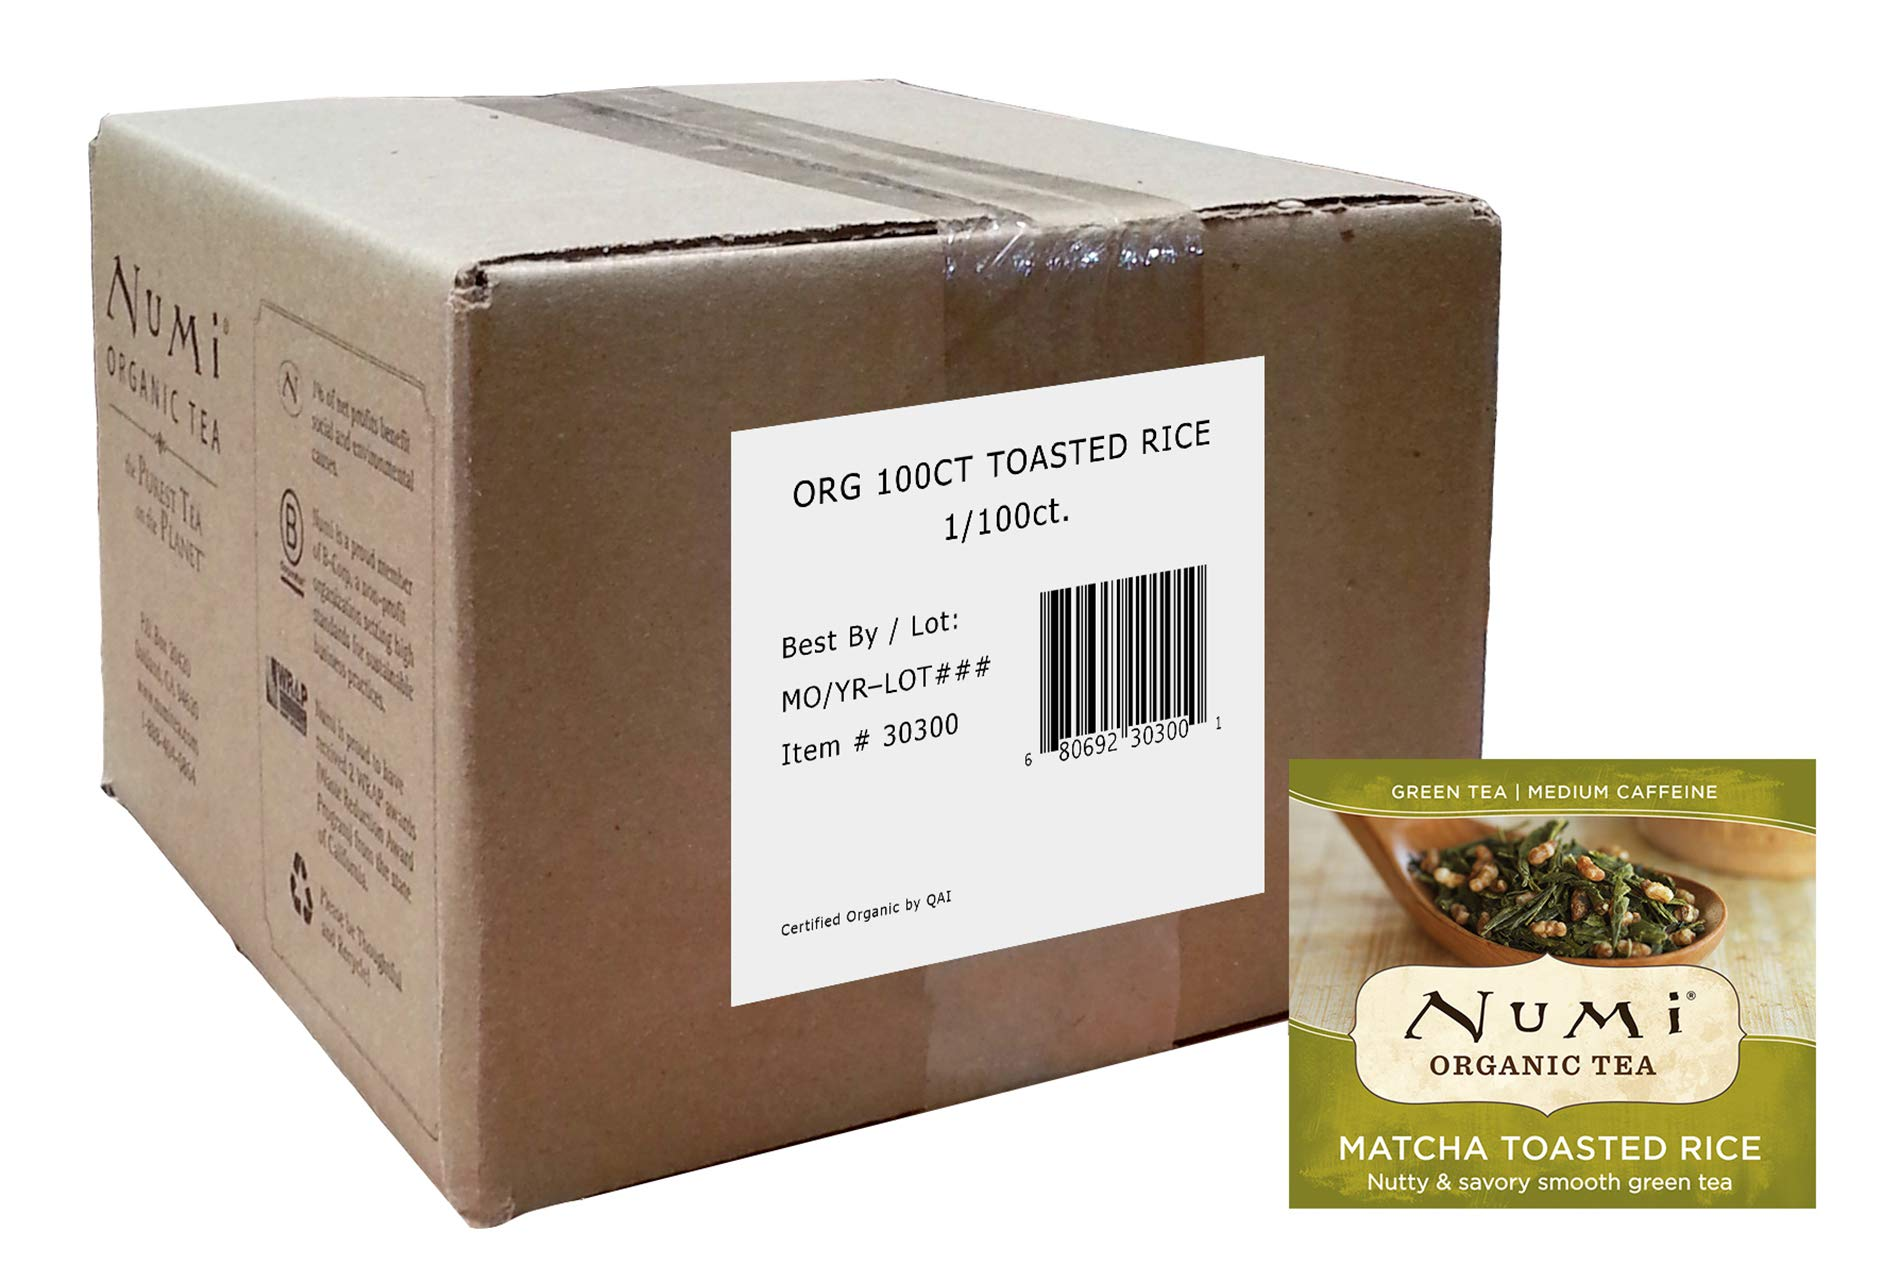 Numi Organic Tea Matcha Toasted Rice, 100 Count Box of Tea Bags, Green Tea (Packaging May Vary)